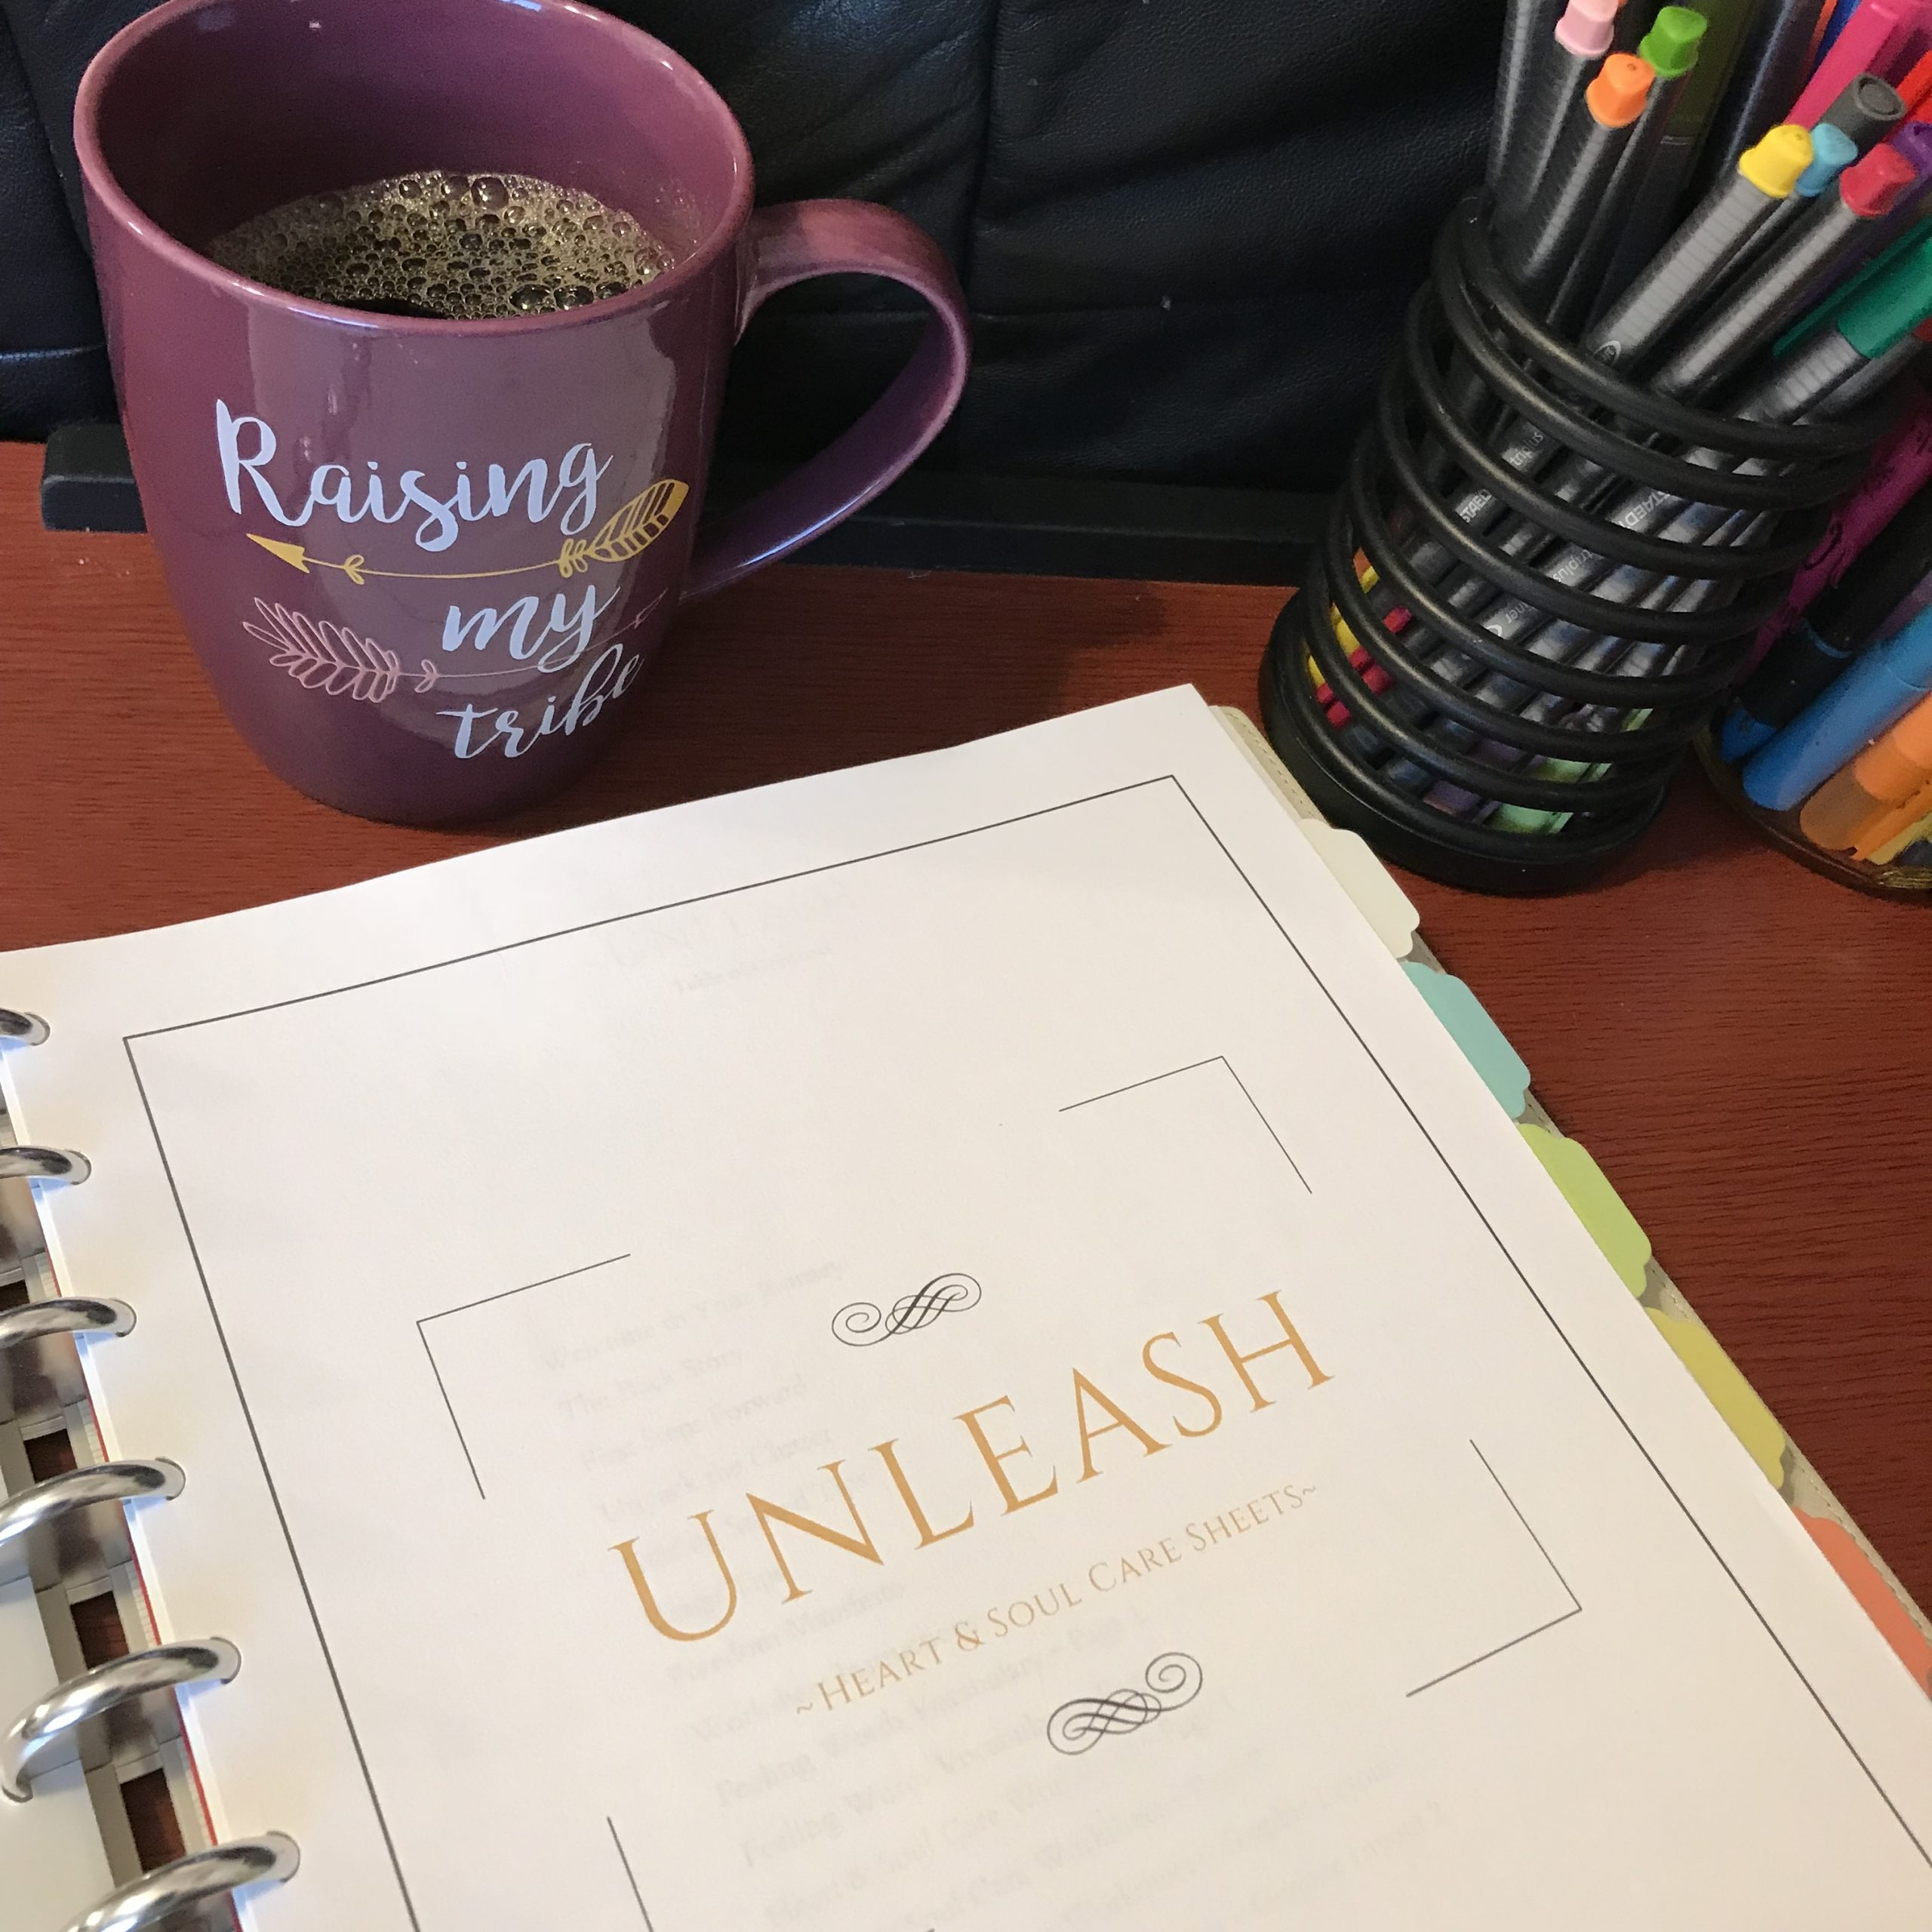 Unleash Sheets Cover with Coffee